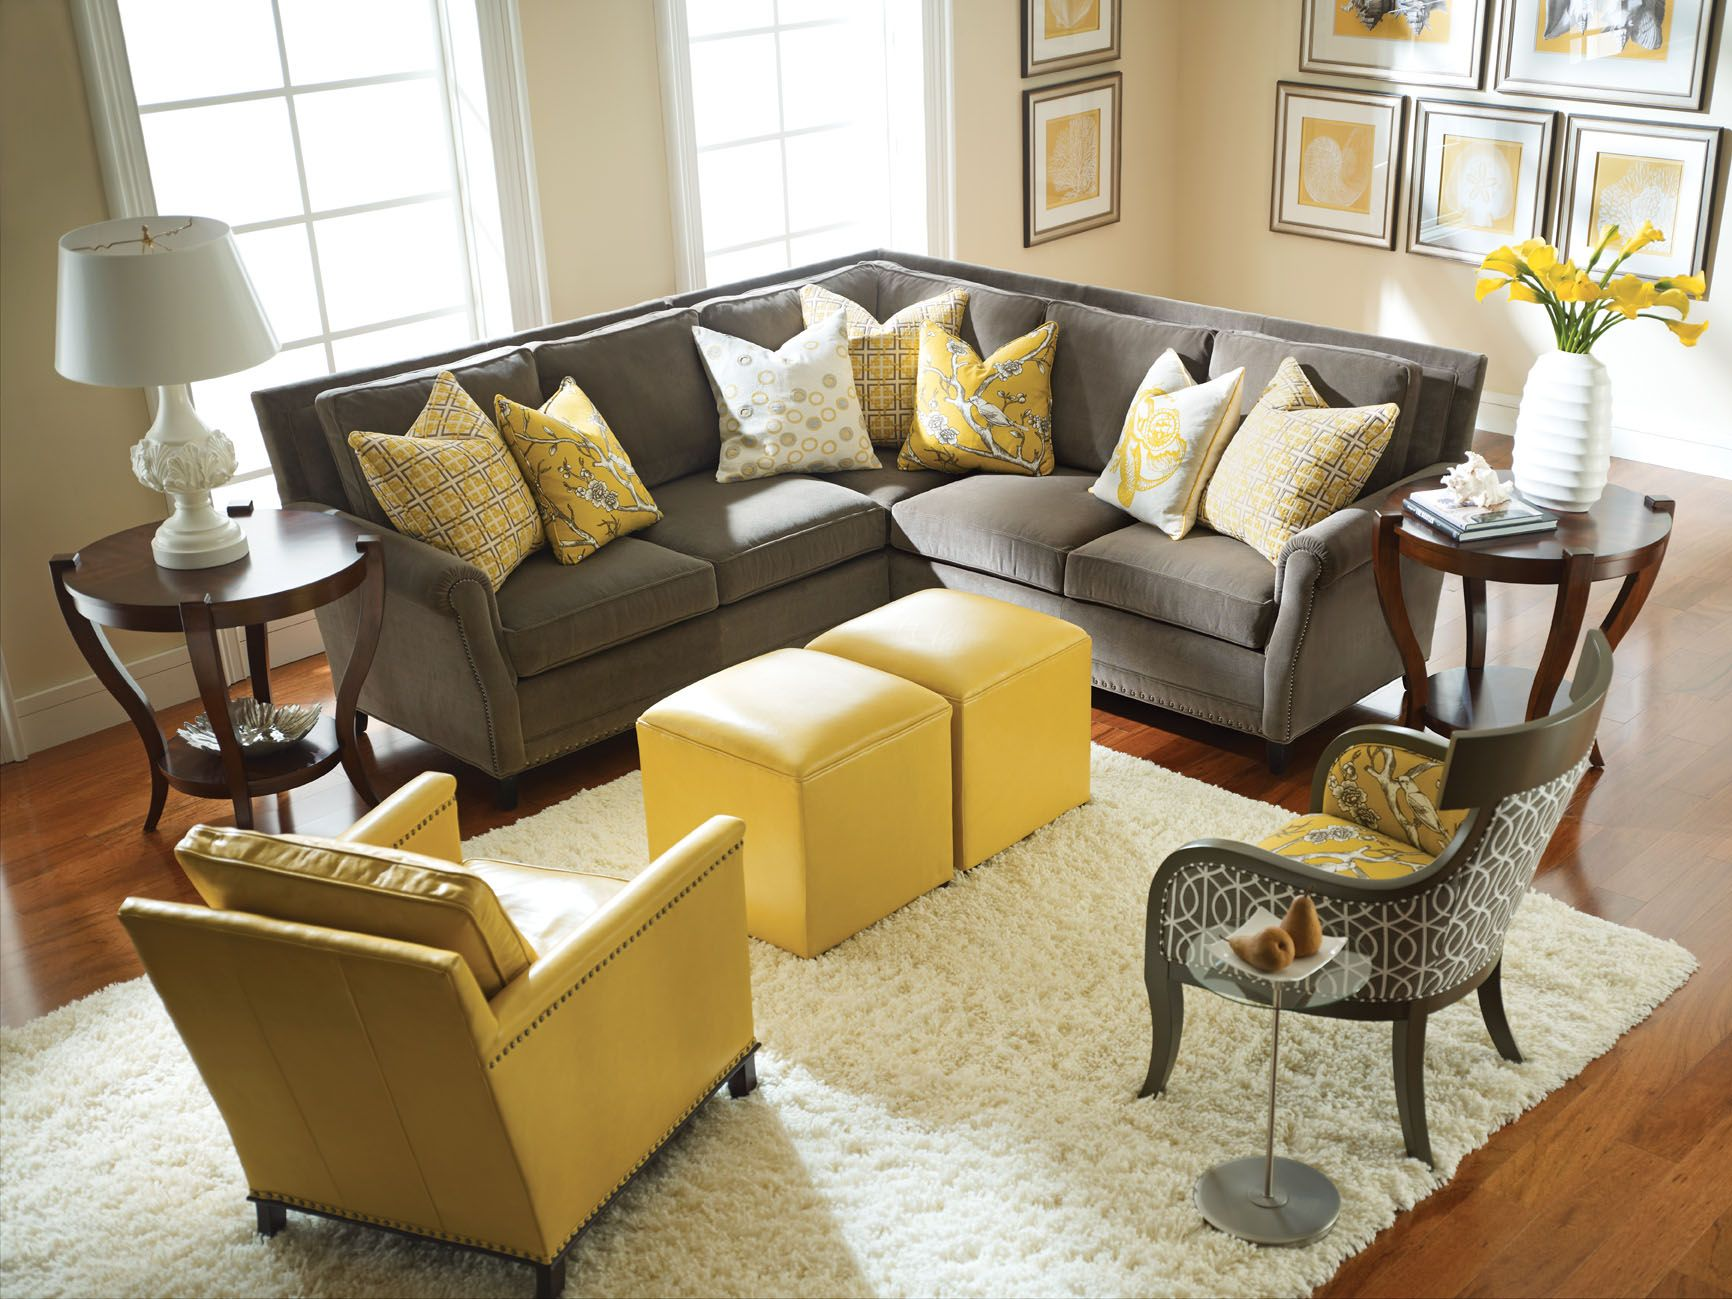 yellow and gray rooms (with images) | grey and yellow living